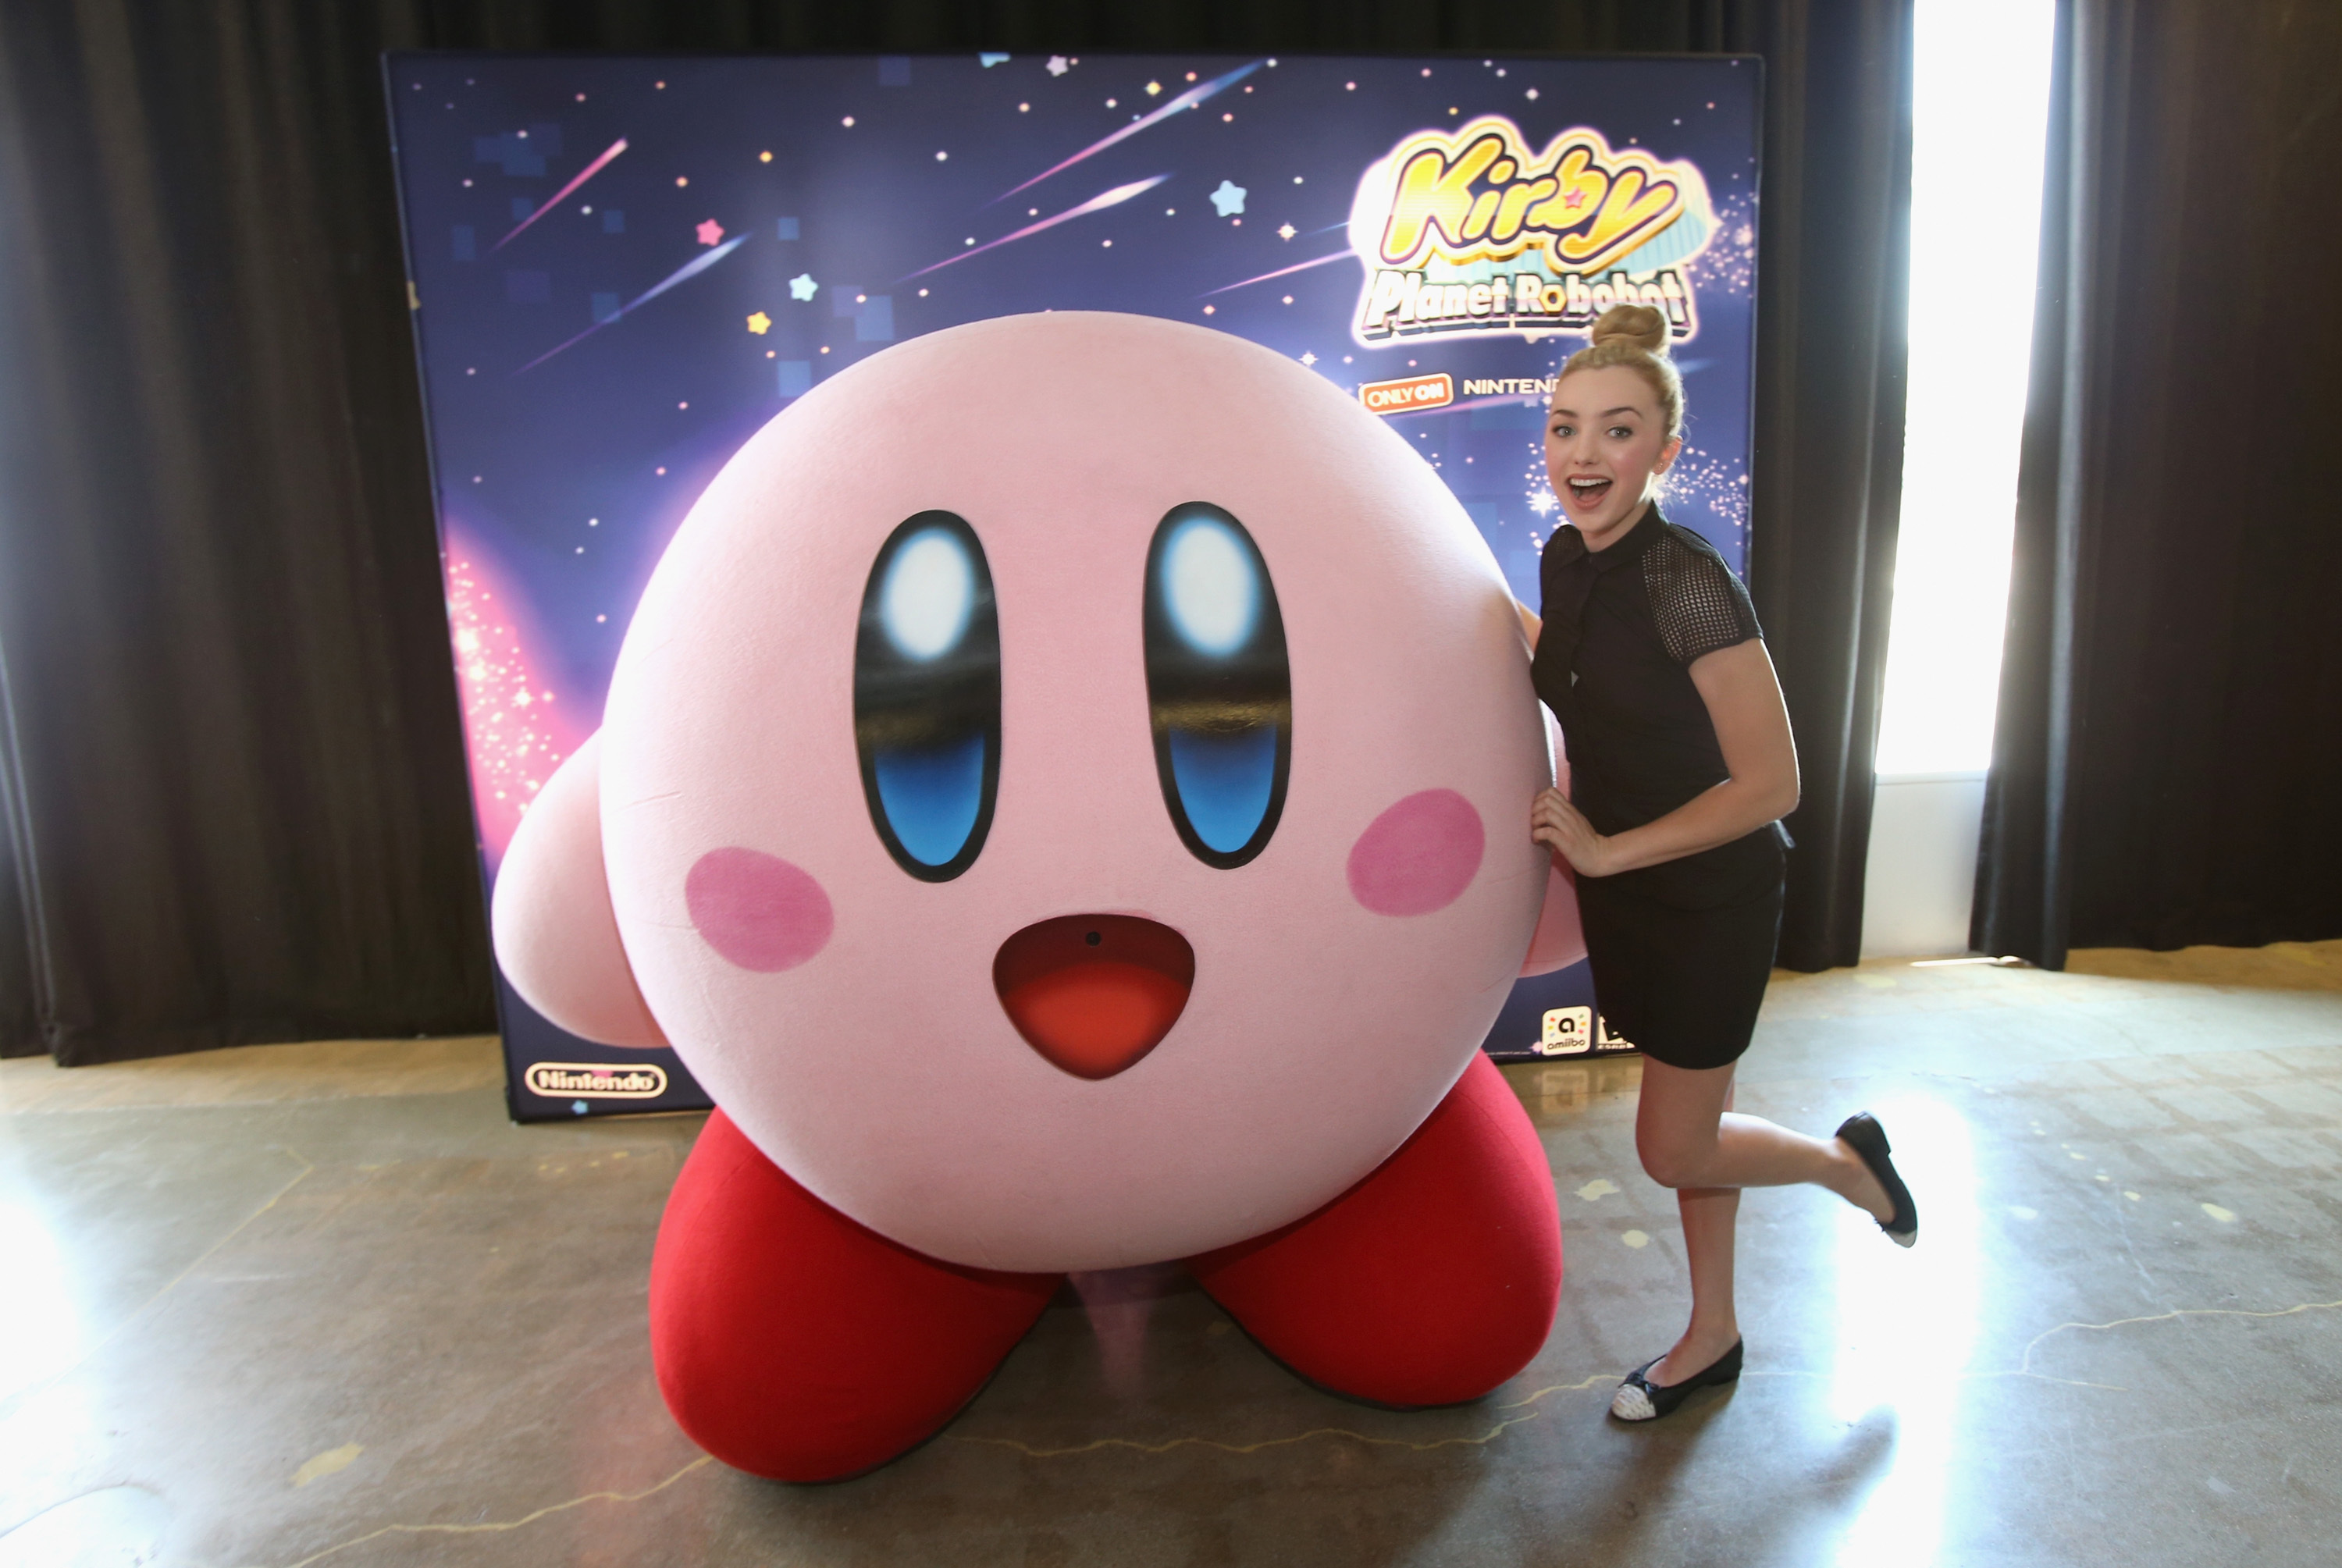 """In this photo provided by Nintendo of America, Peyton List from Disney's """"Bunk'd' who is starring in the upcoming feature """"The Thinning"""" attends the Kirby: Planet Robobot event celebrating the game's launch at Smashbox Studios in Culver City, California, on June 22, 2016. In this new action-packed adventure, Kirby gets new abilities and transformations, such as flamethrower arms and buzz-saw hands."""